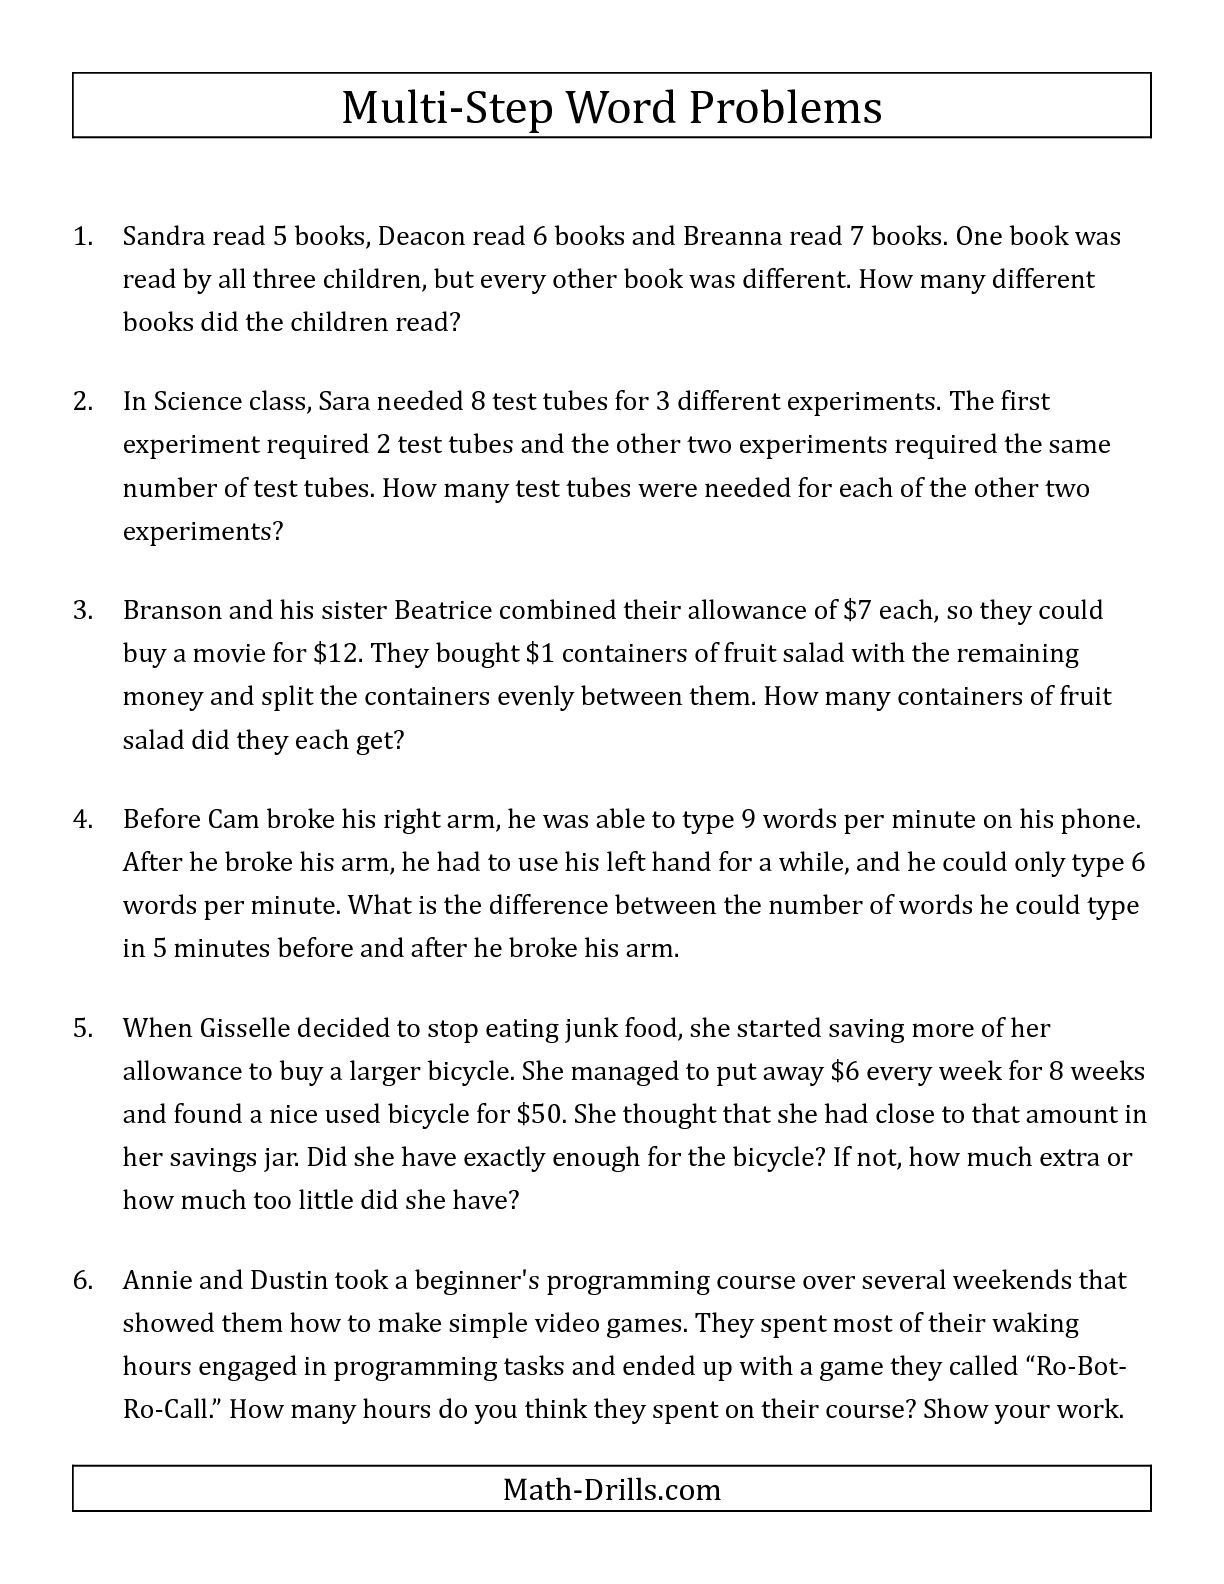 Mythbusters Penny Drop Worksheet Answers